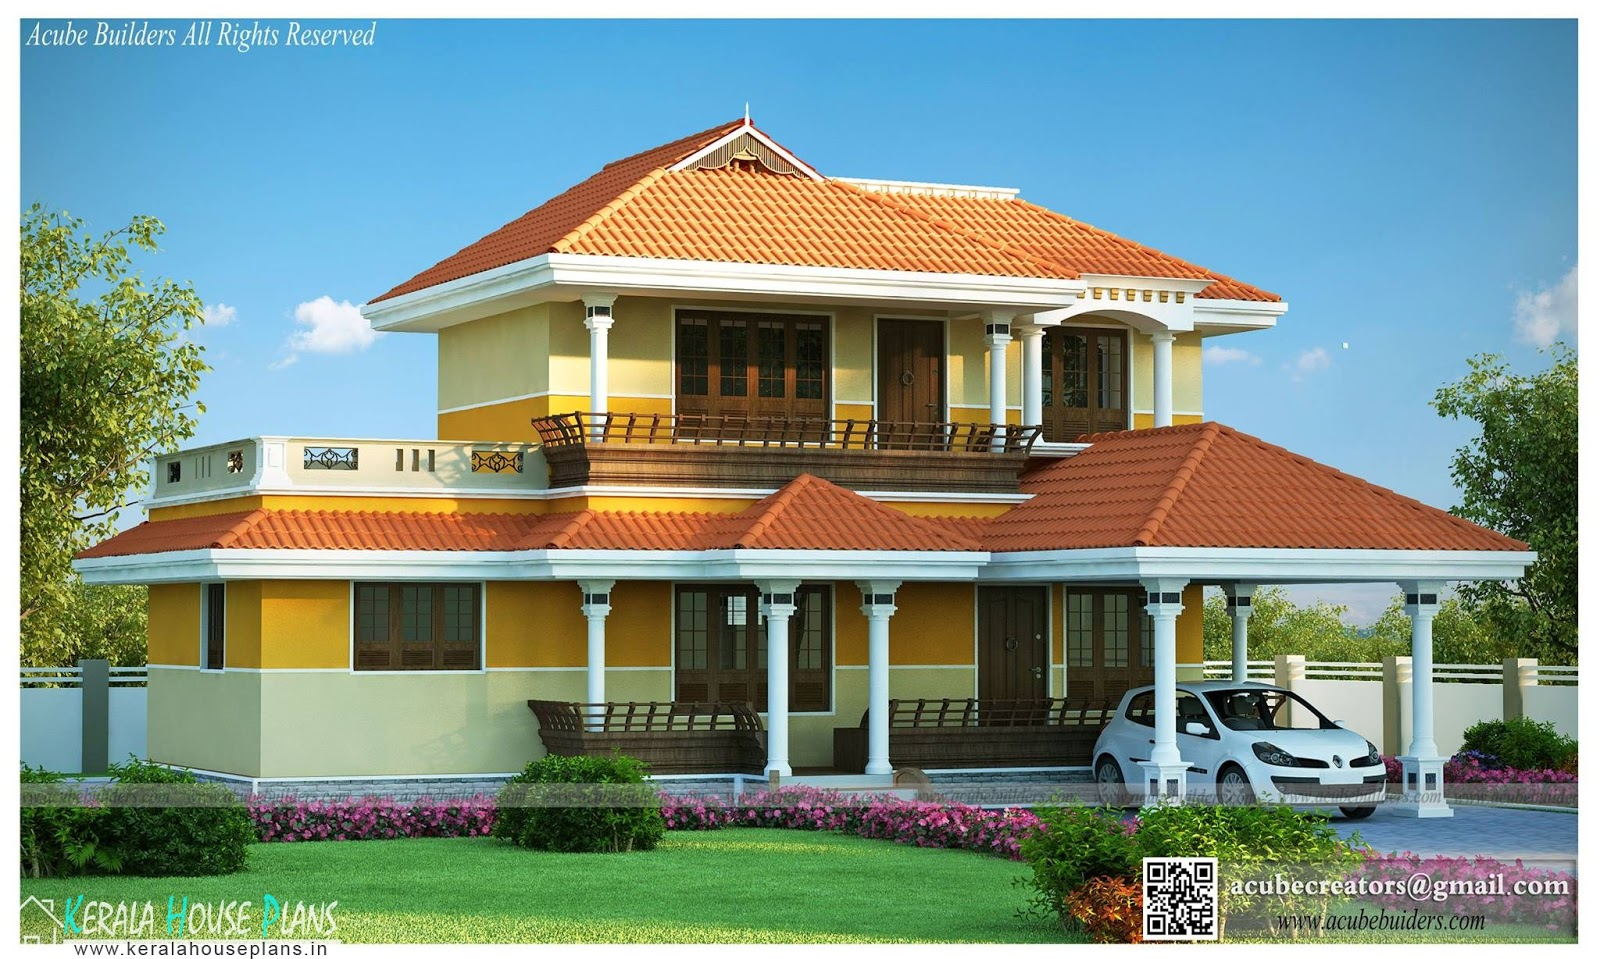 Traditional house plans in kerala kerala house plans for Design traditions home plans